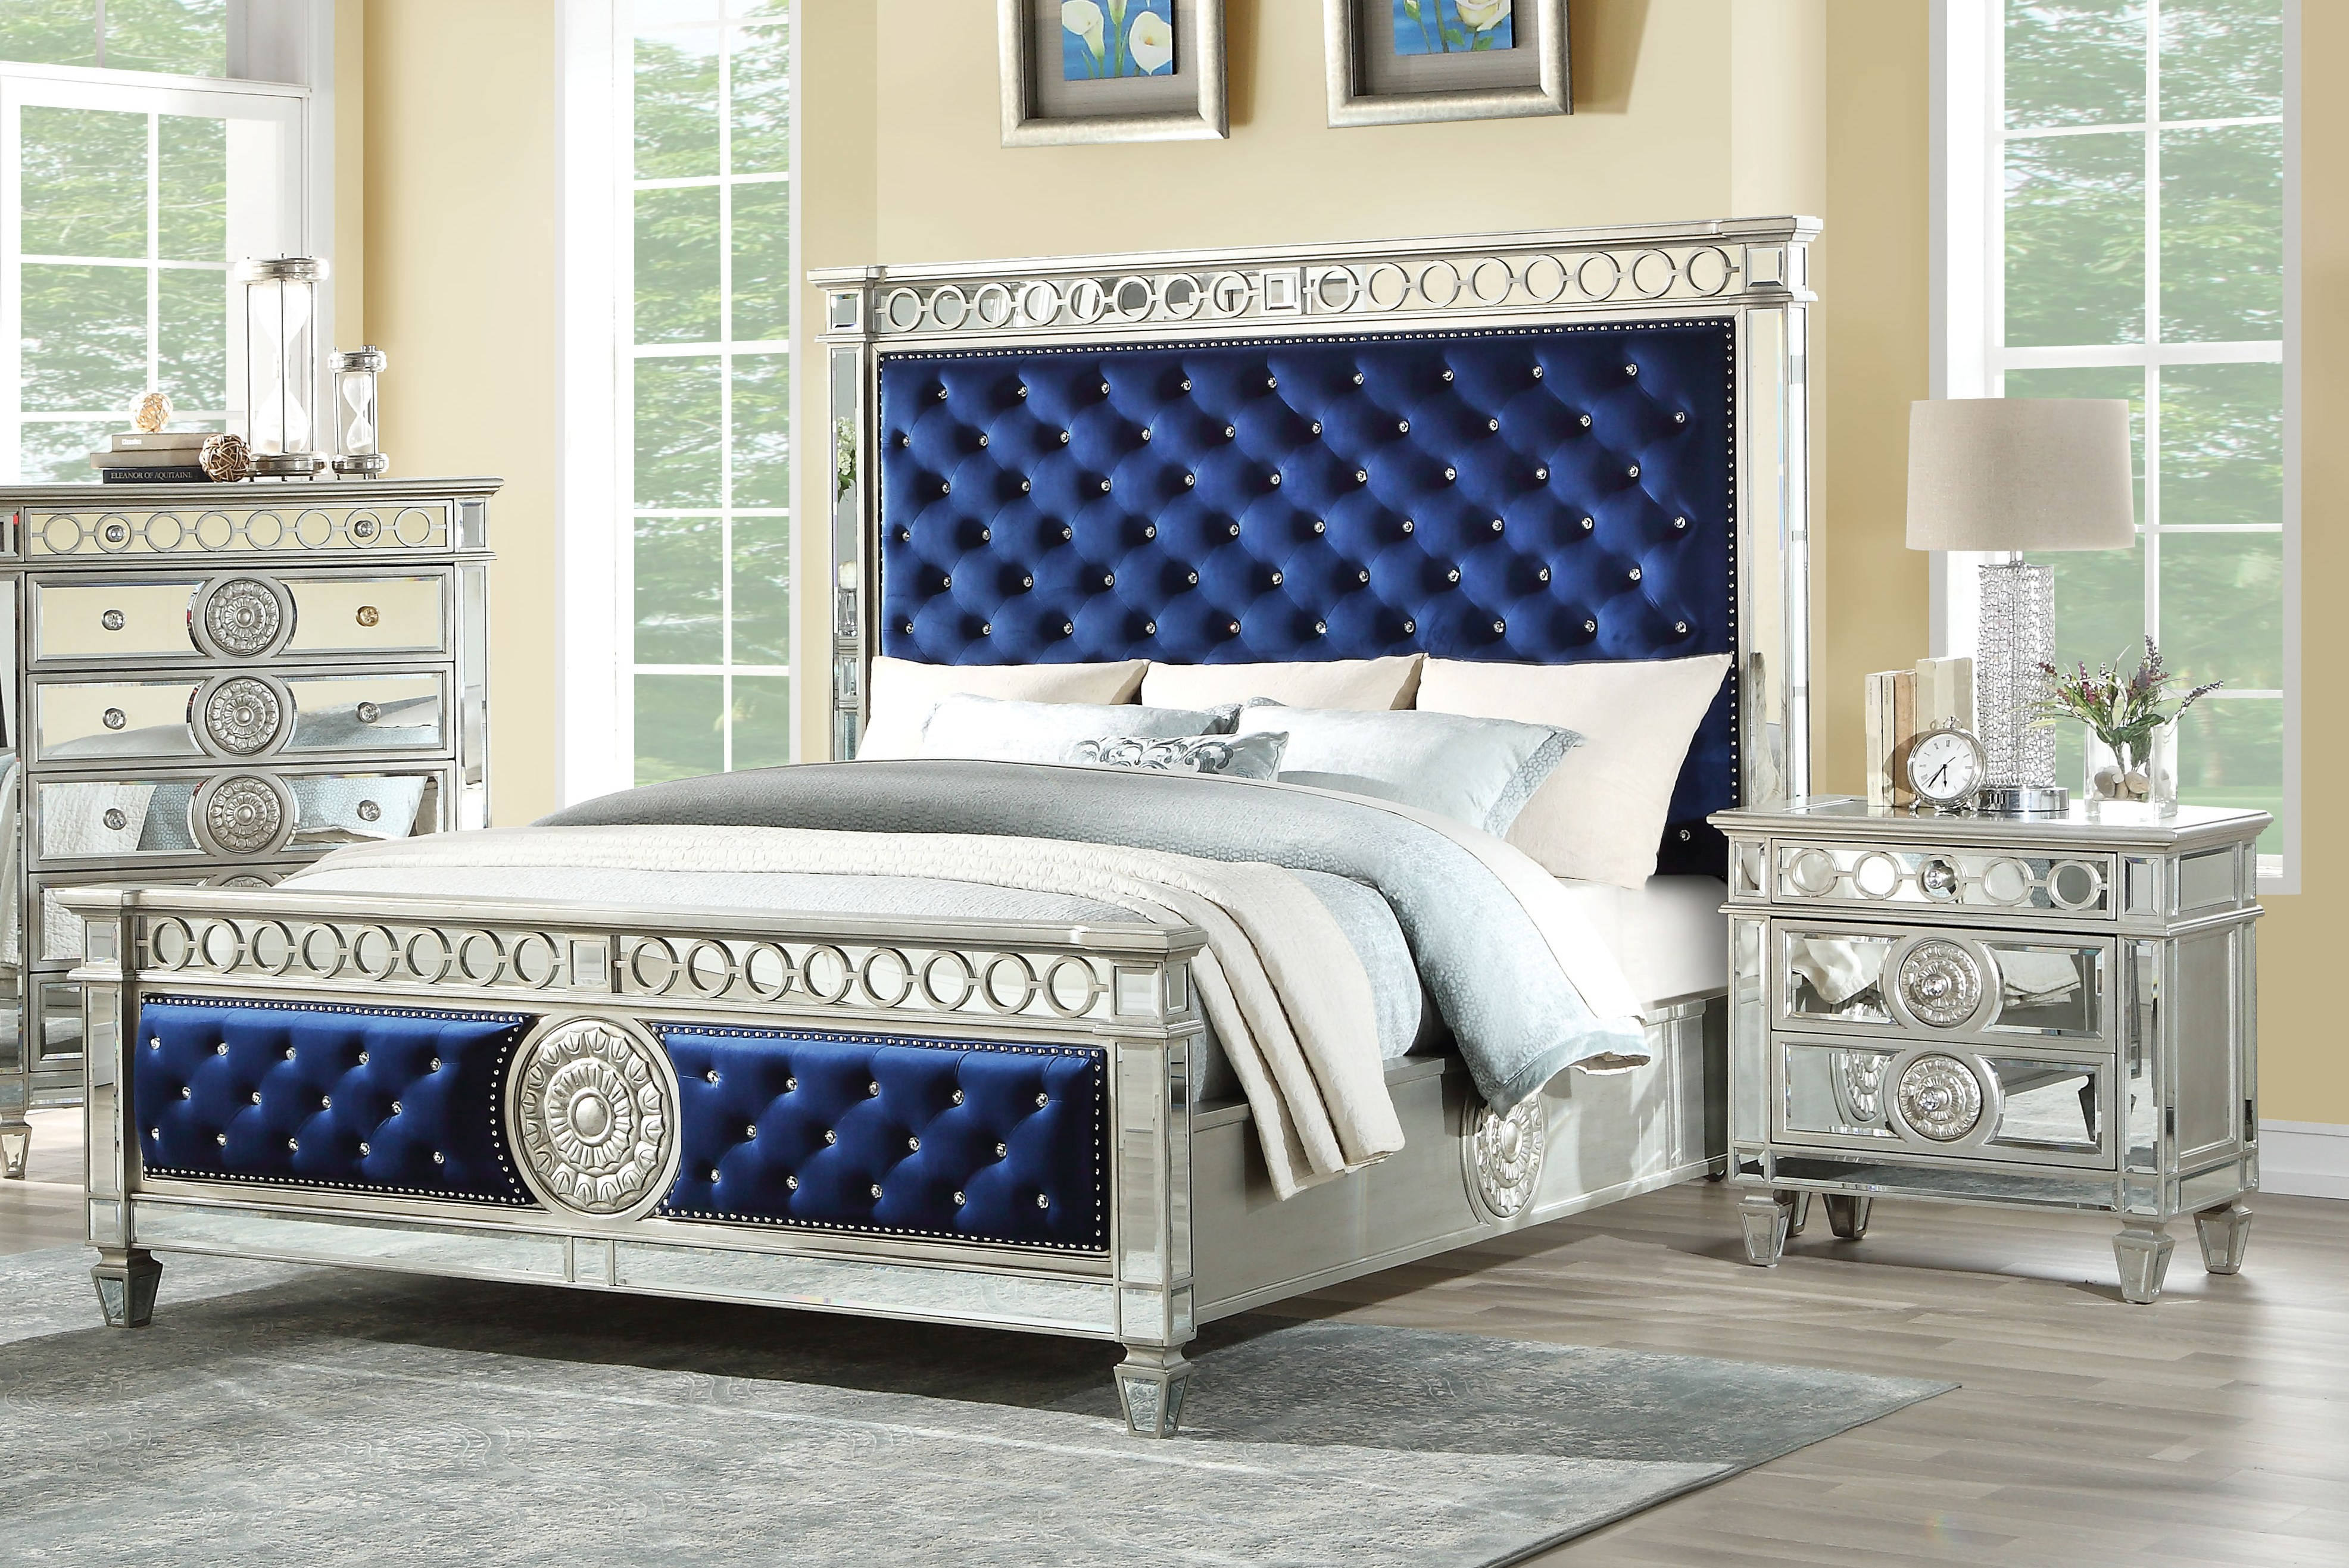 Acme Furniture Varian Blue Silver 2pc Bedroom Set with Queen ...